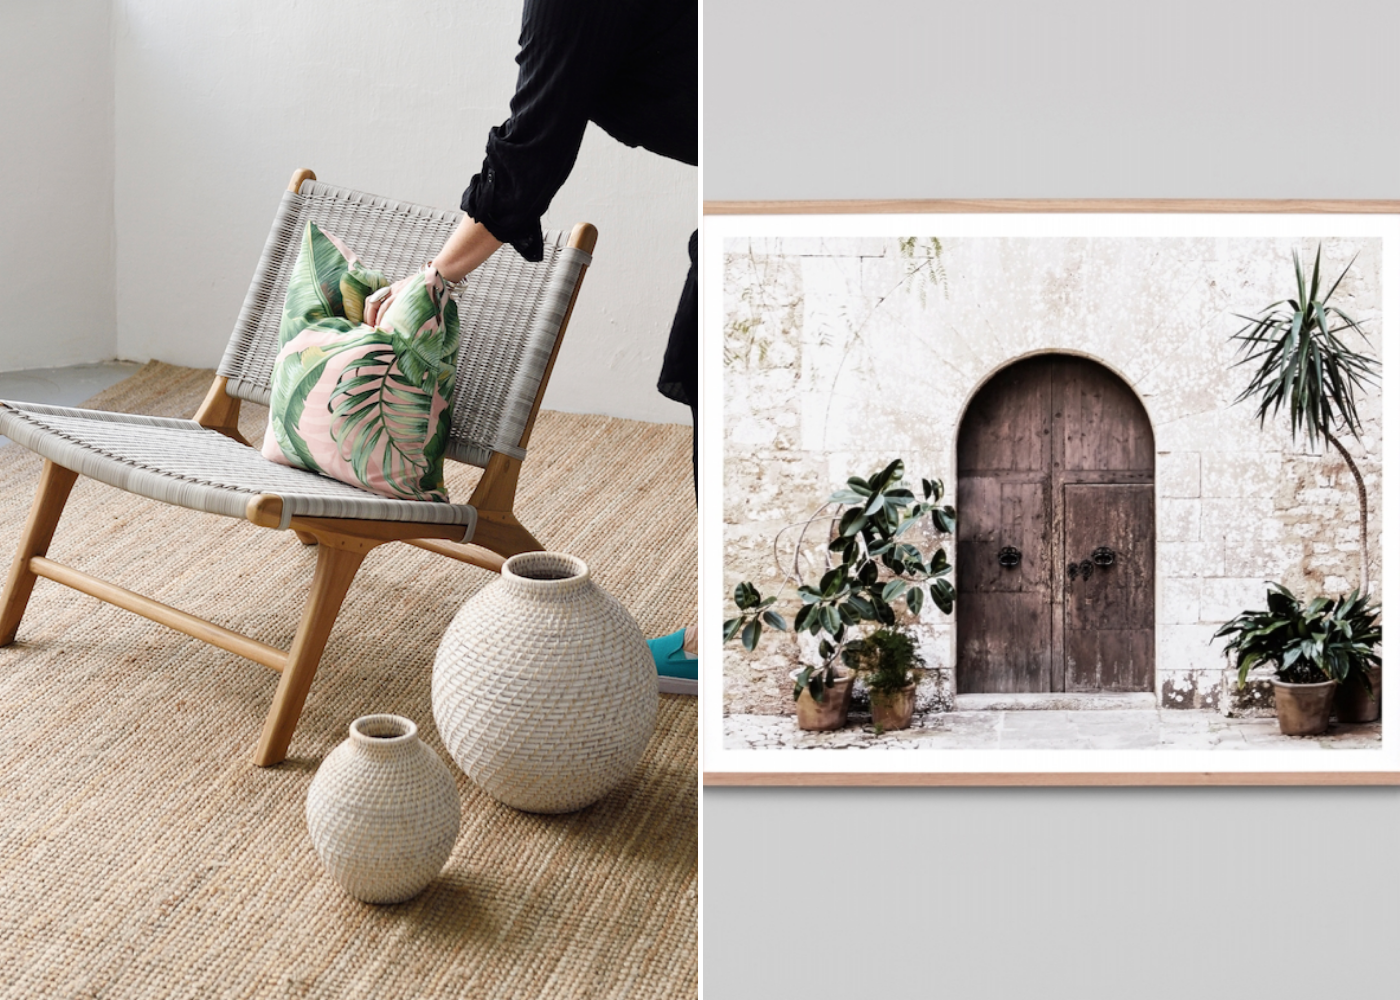 Shop online for tropical bohemian decor in Singapore: Island Living